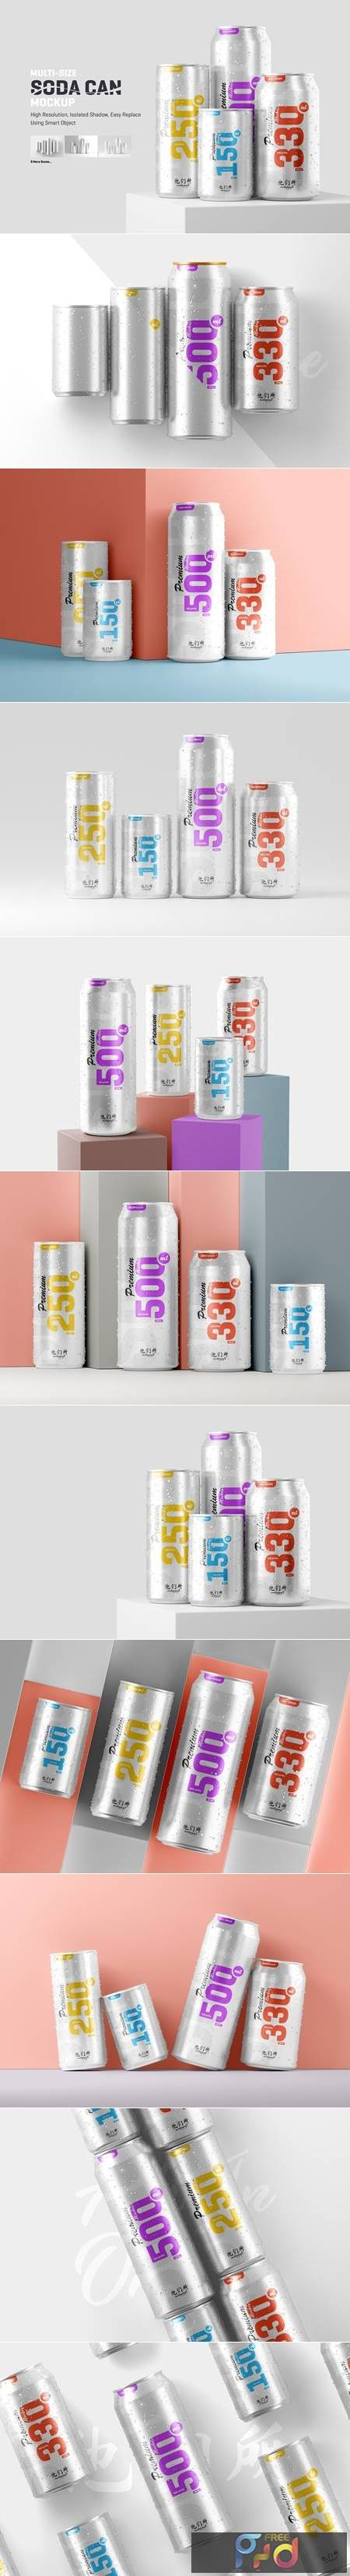 Multisize Soda Can Mockup 5664176 1